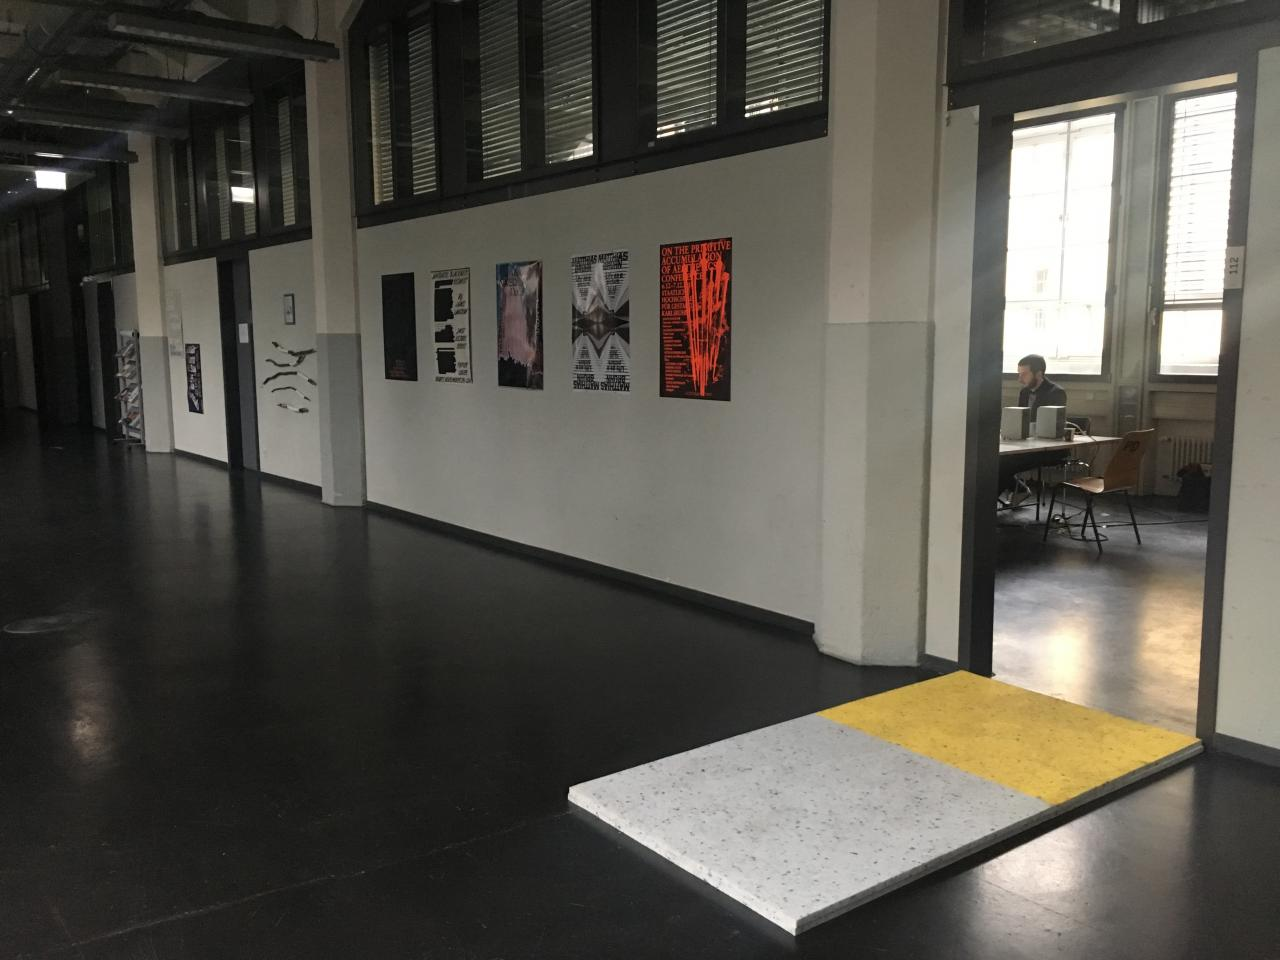 In front of the entrance to the seminar room of the Critical Zones Study Group at Karlsruhe University of Arts and Design (HfG) there is a foam folder on the floor as a test for all seminar participants.